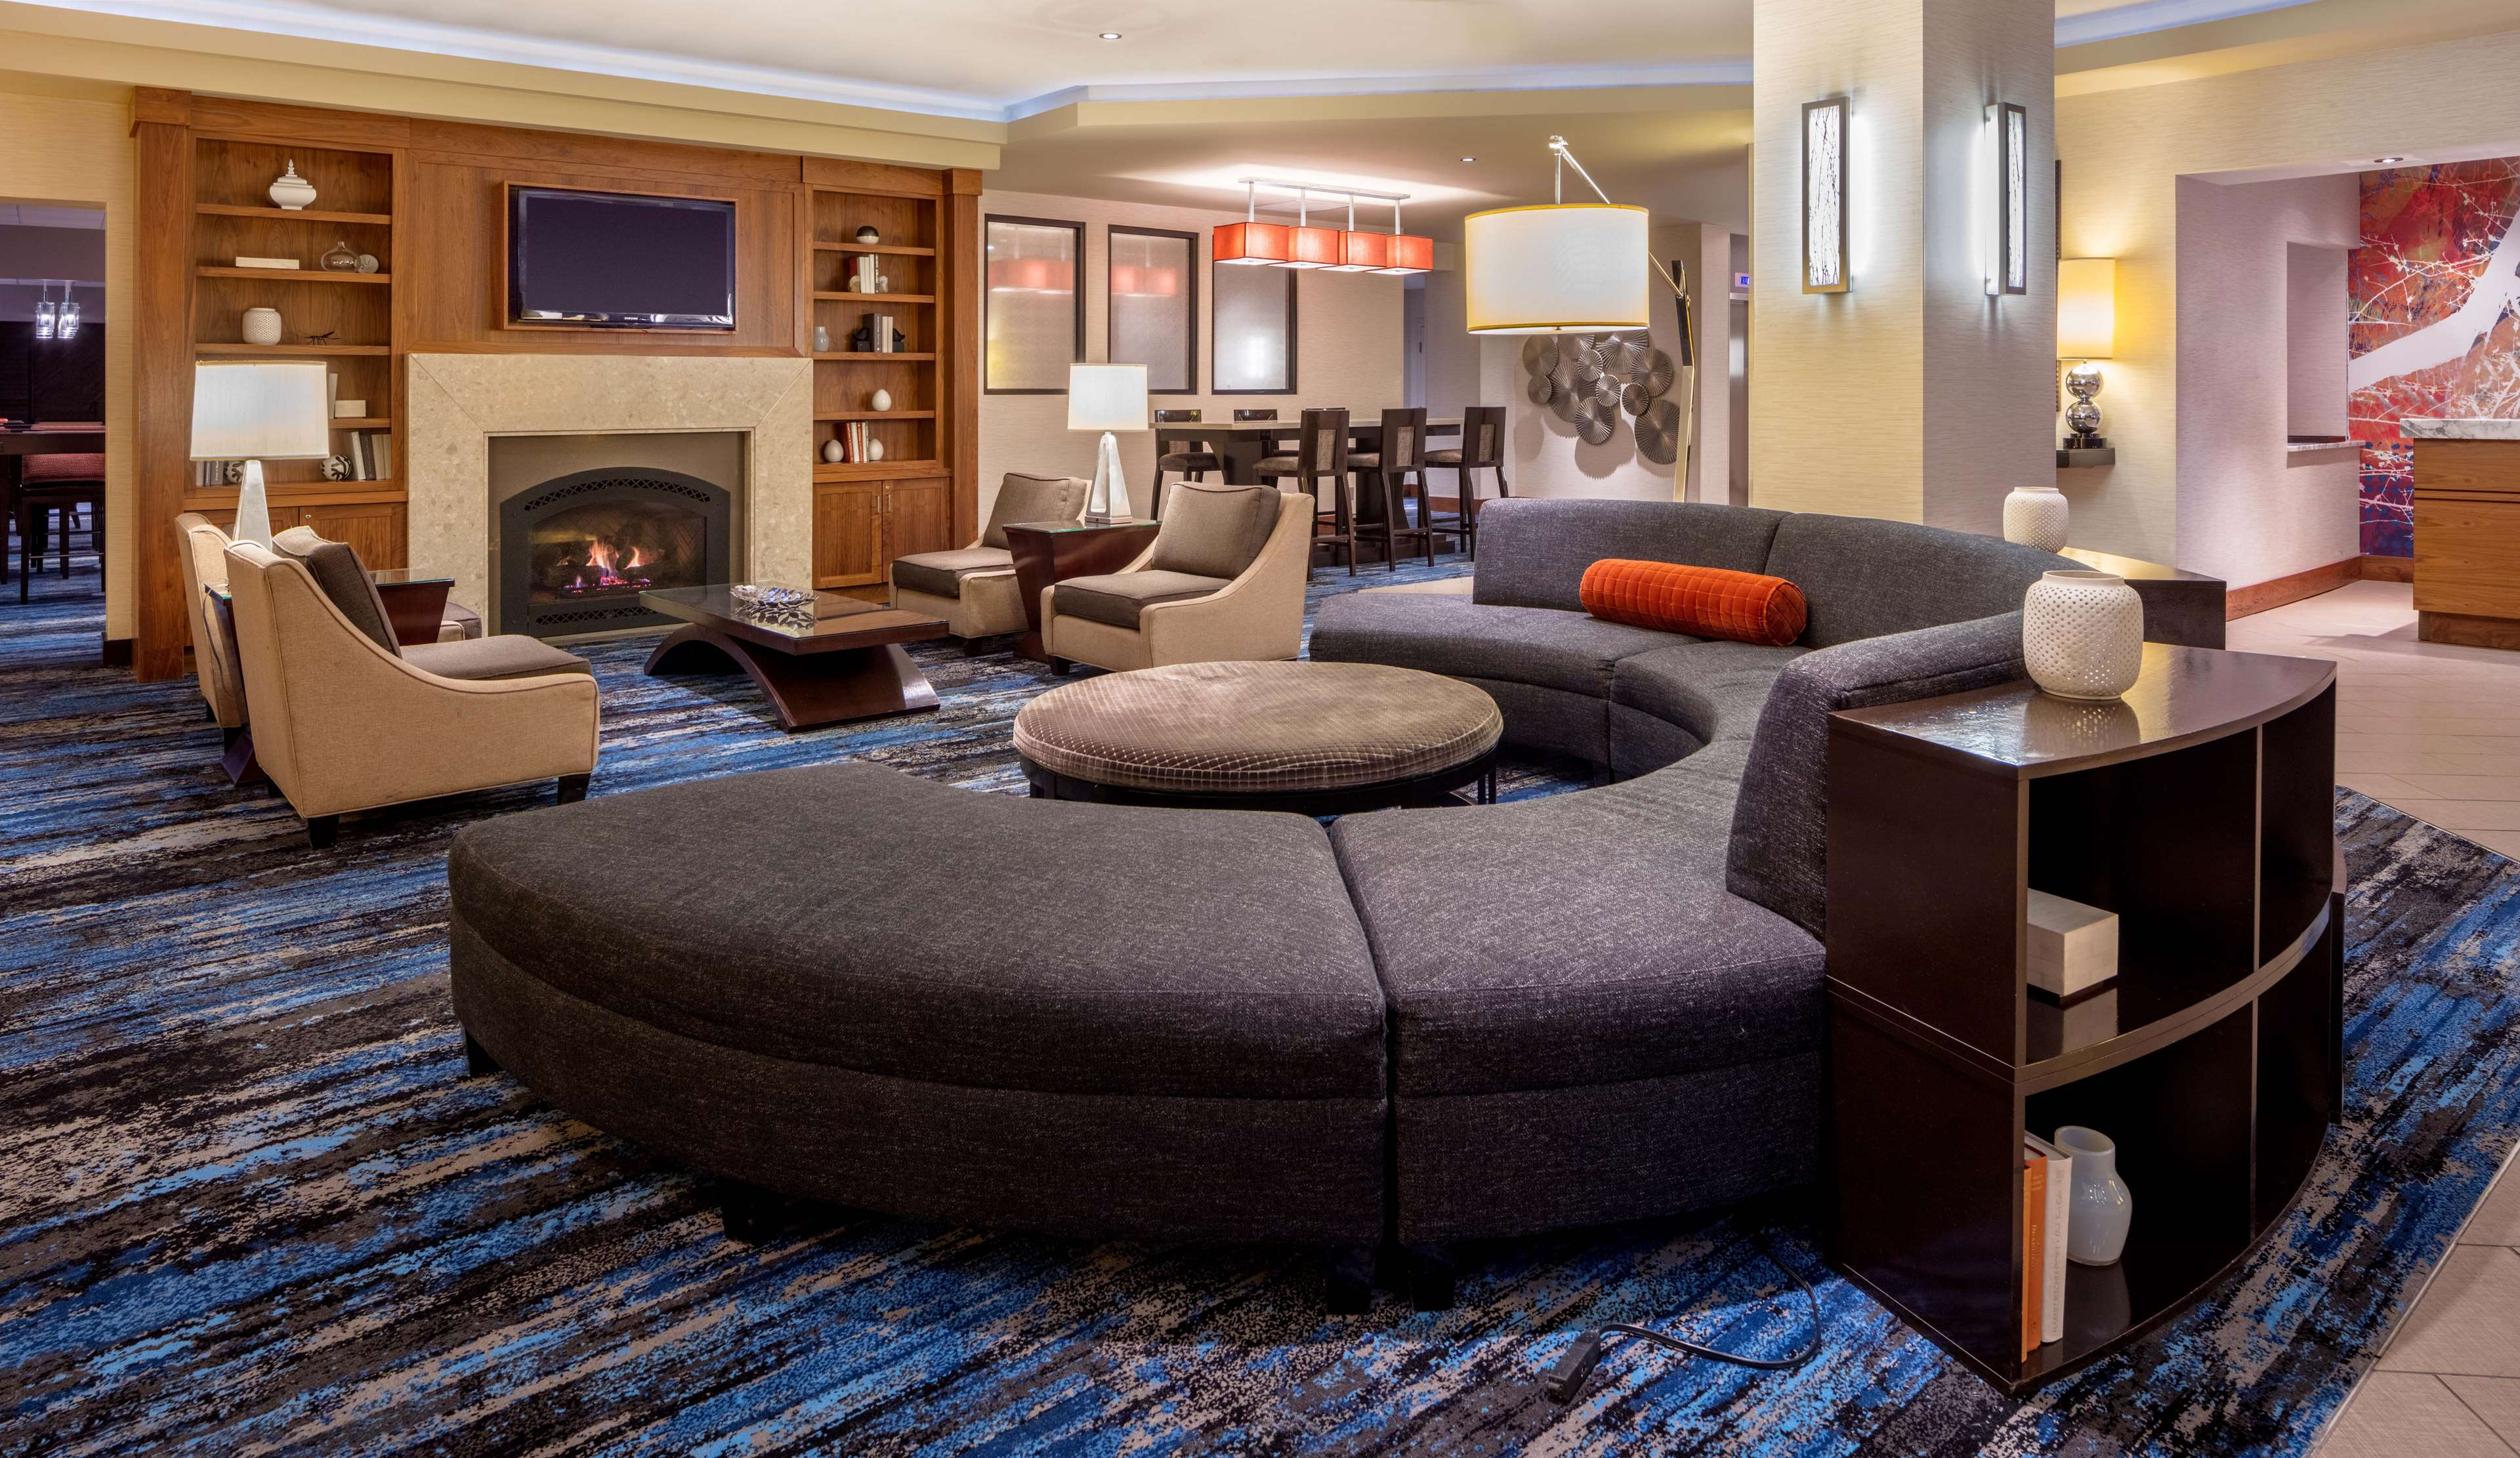 DoubleTree Suites by Hilton Hotel Minneapolis image 3